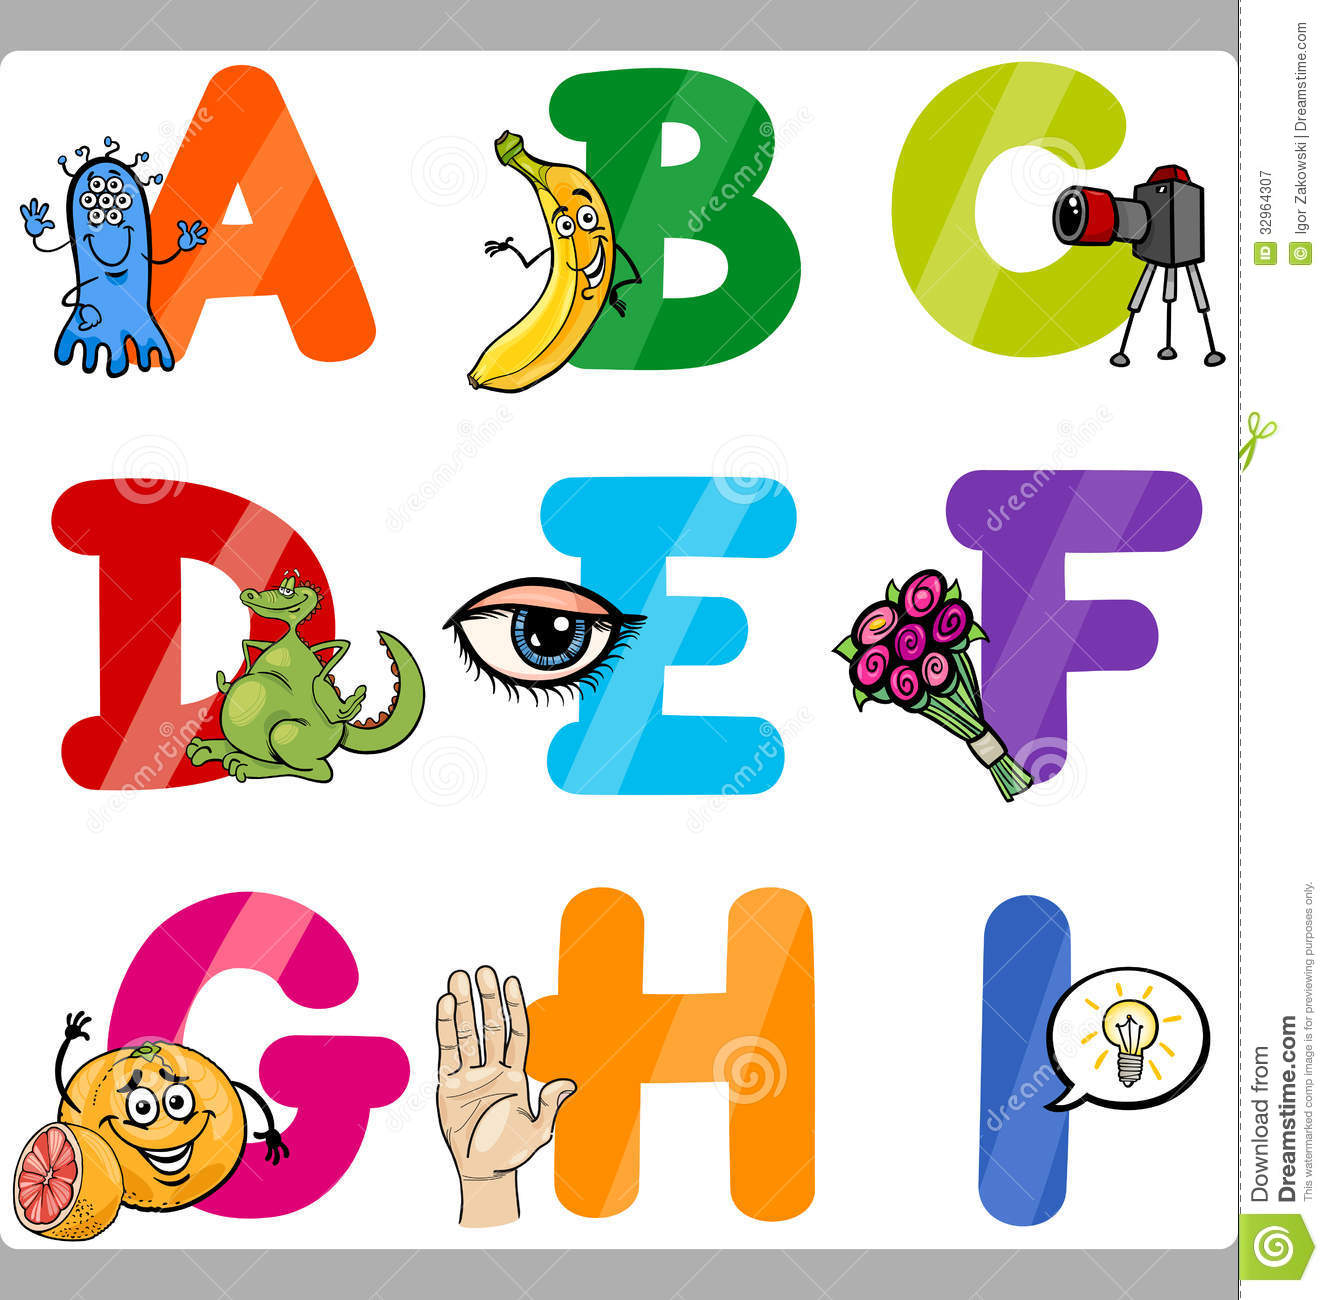 Letters for kids clipart picture free Education Cartoon Alphabet Letters For Kids Royalty Free Stock ... picture free